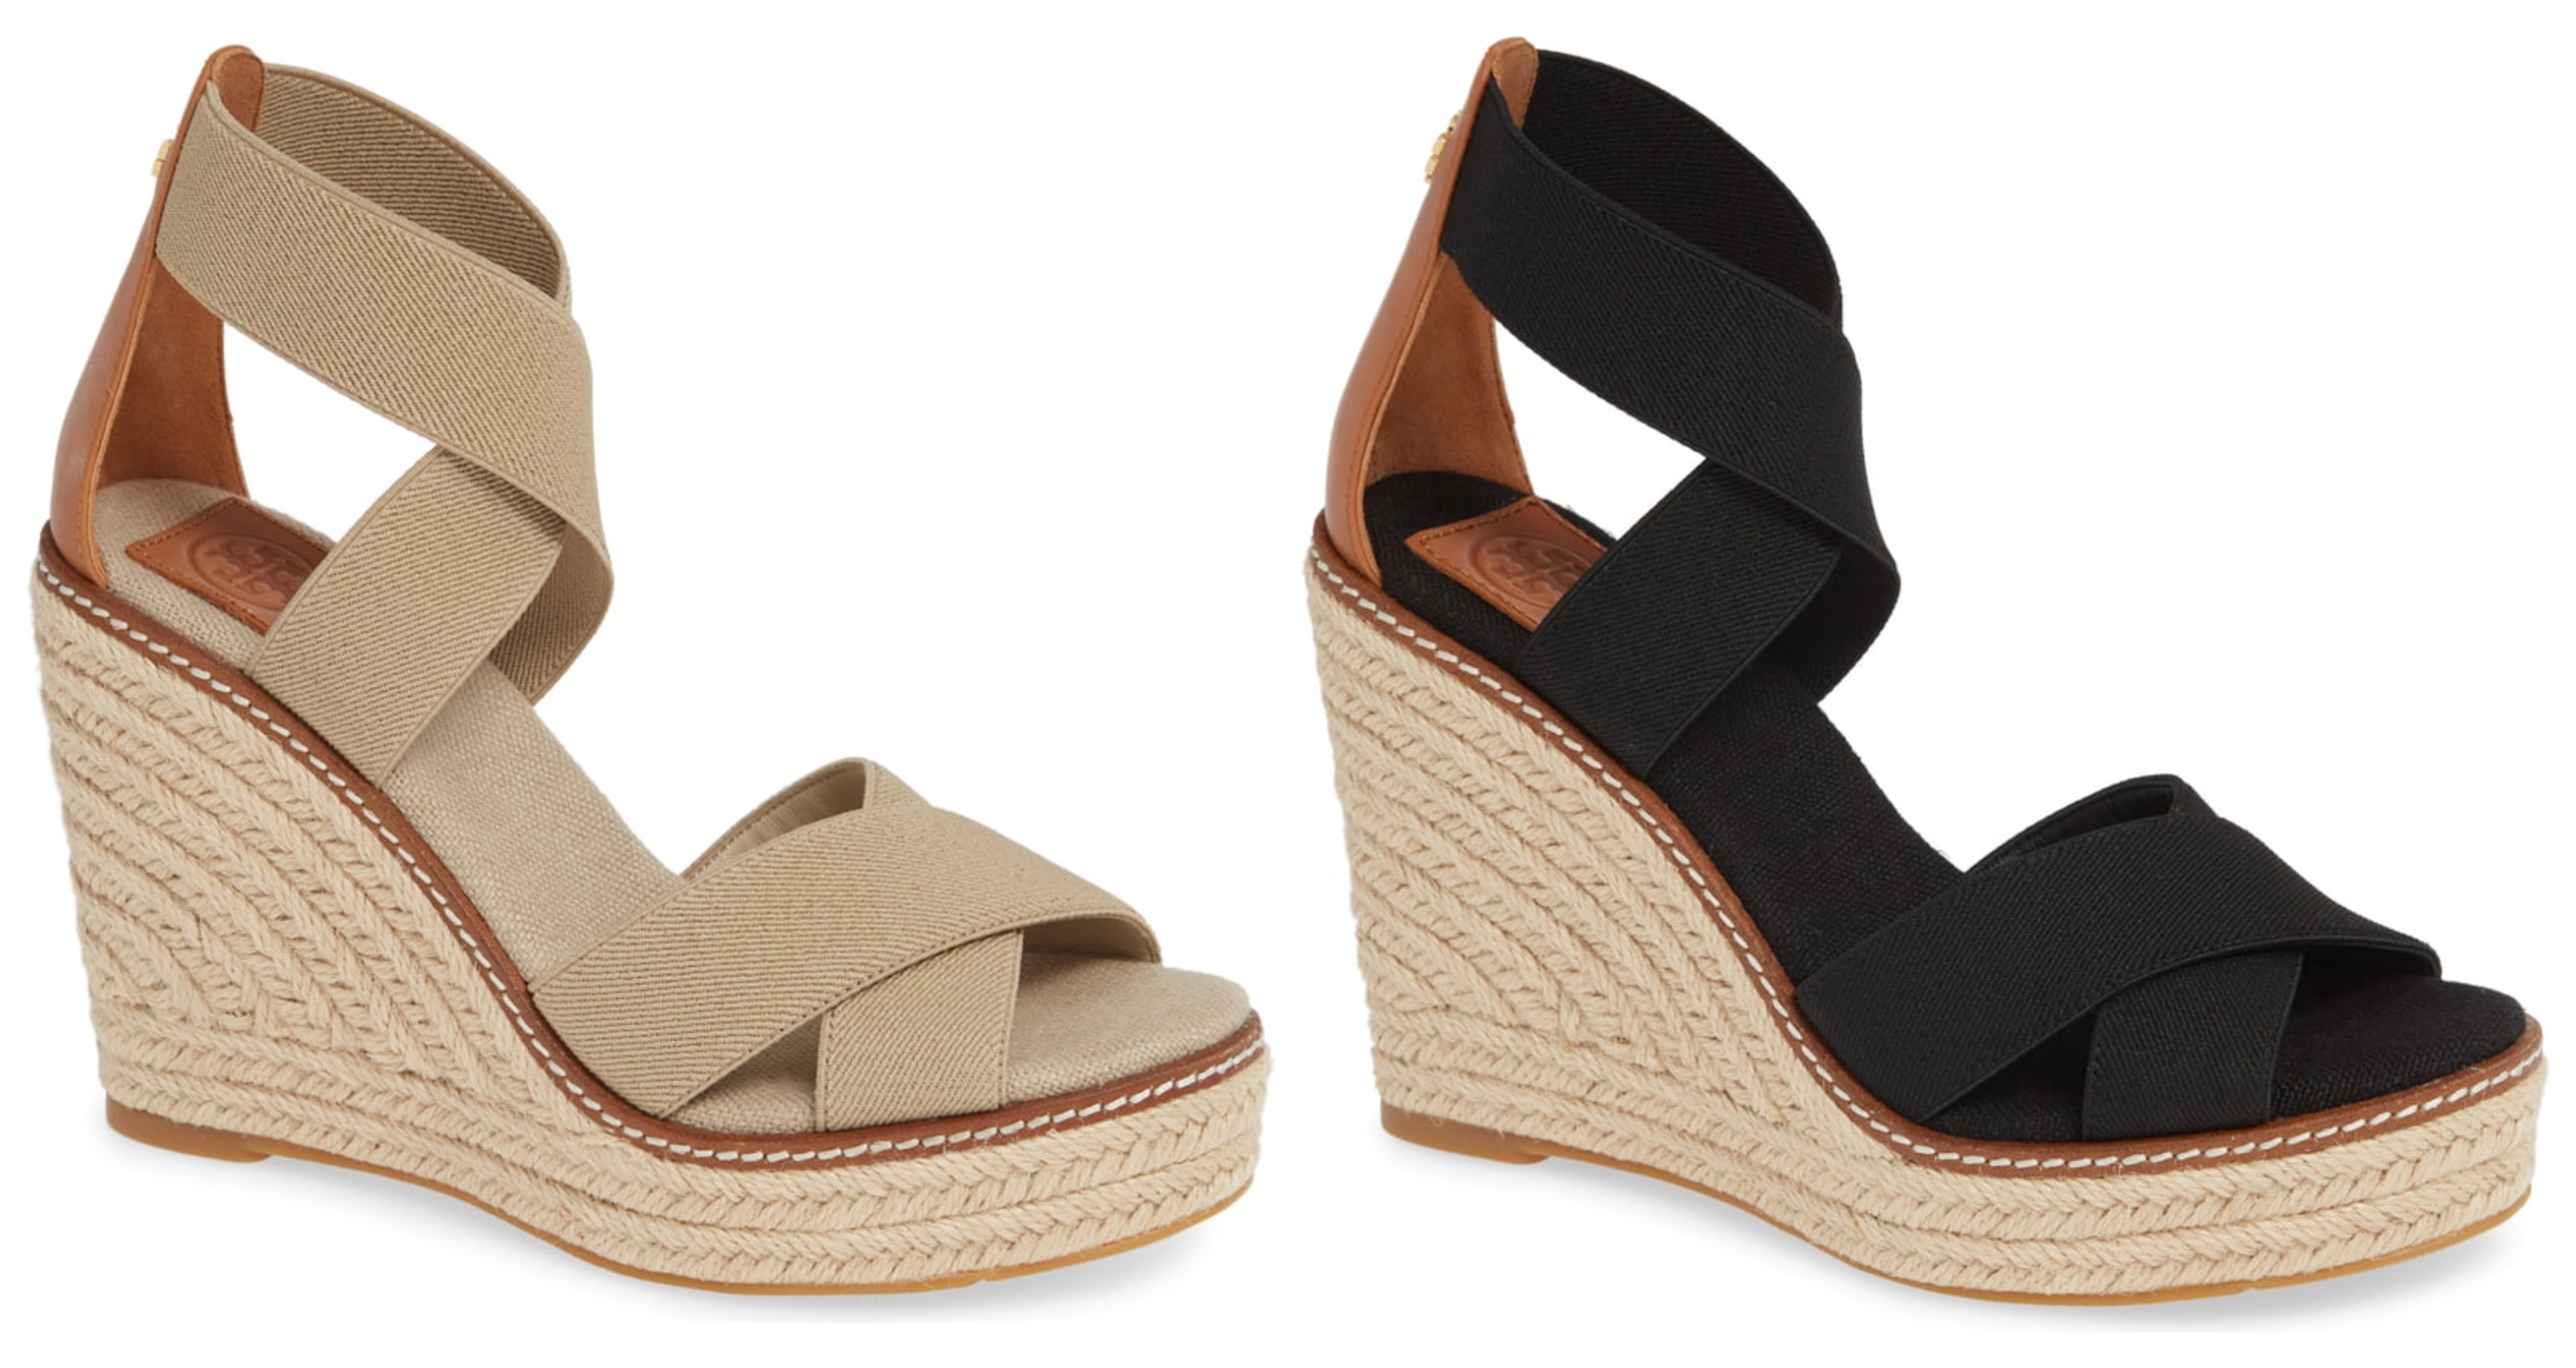 8ee03714356 Nordstrom  Tory Burch Frieda Espadrille Wedge Sandals – 30% Off + Free  Shipping!